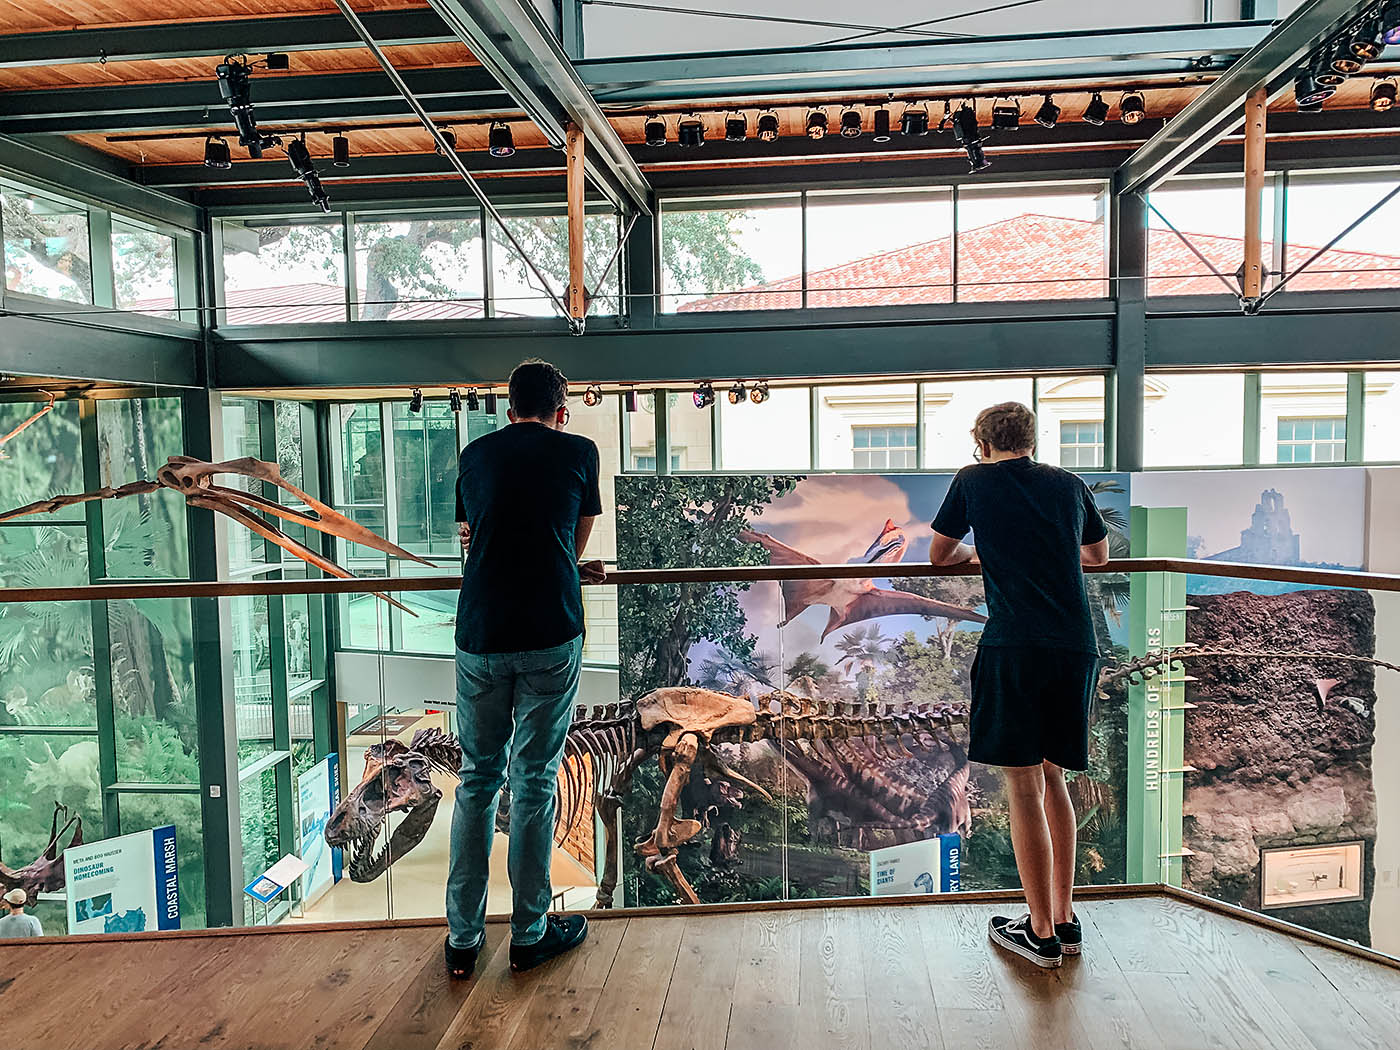 Teenaged boys looking down on a mural and dinosaur skeletons at a museum